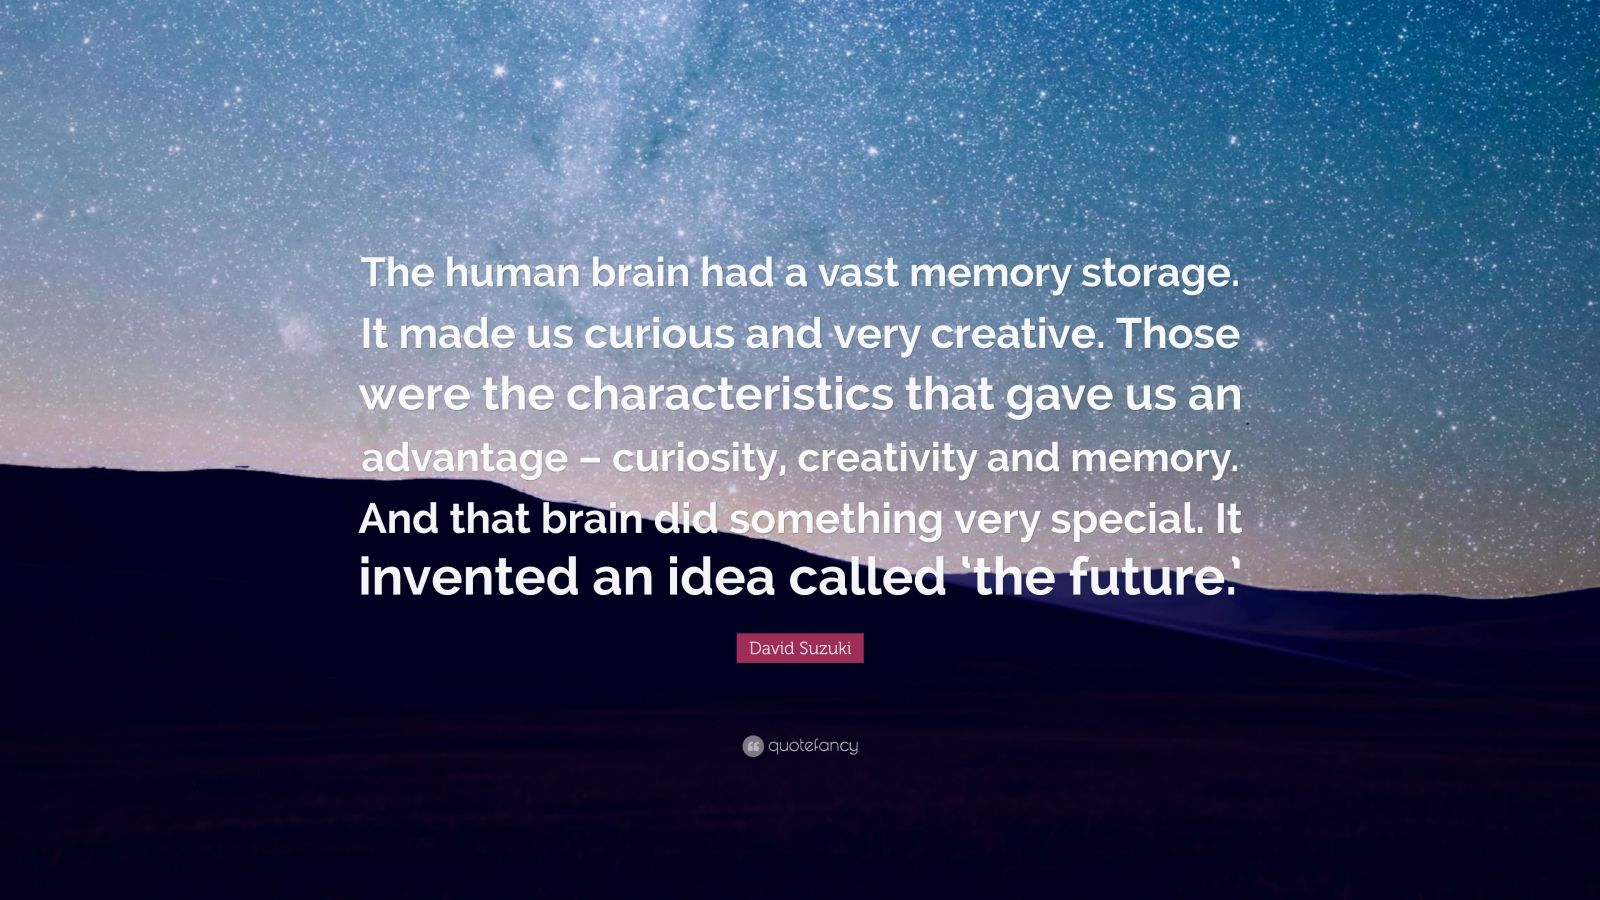 "David Suzuki Quote: ""The human brain had a vast memory storage. It made us curious and very creative. Those were the characteristics that gave us an advantage – curiosity, creativity and memory. And that brain did something very special. It invented an idea called 'the future.'"""